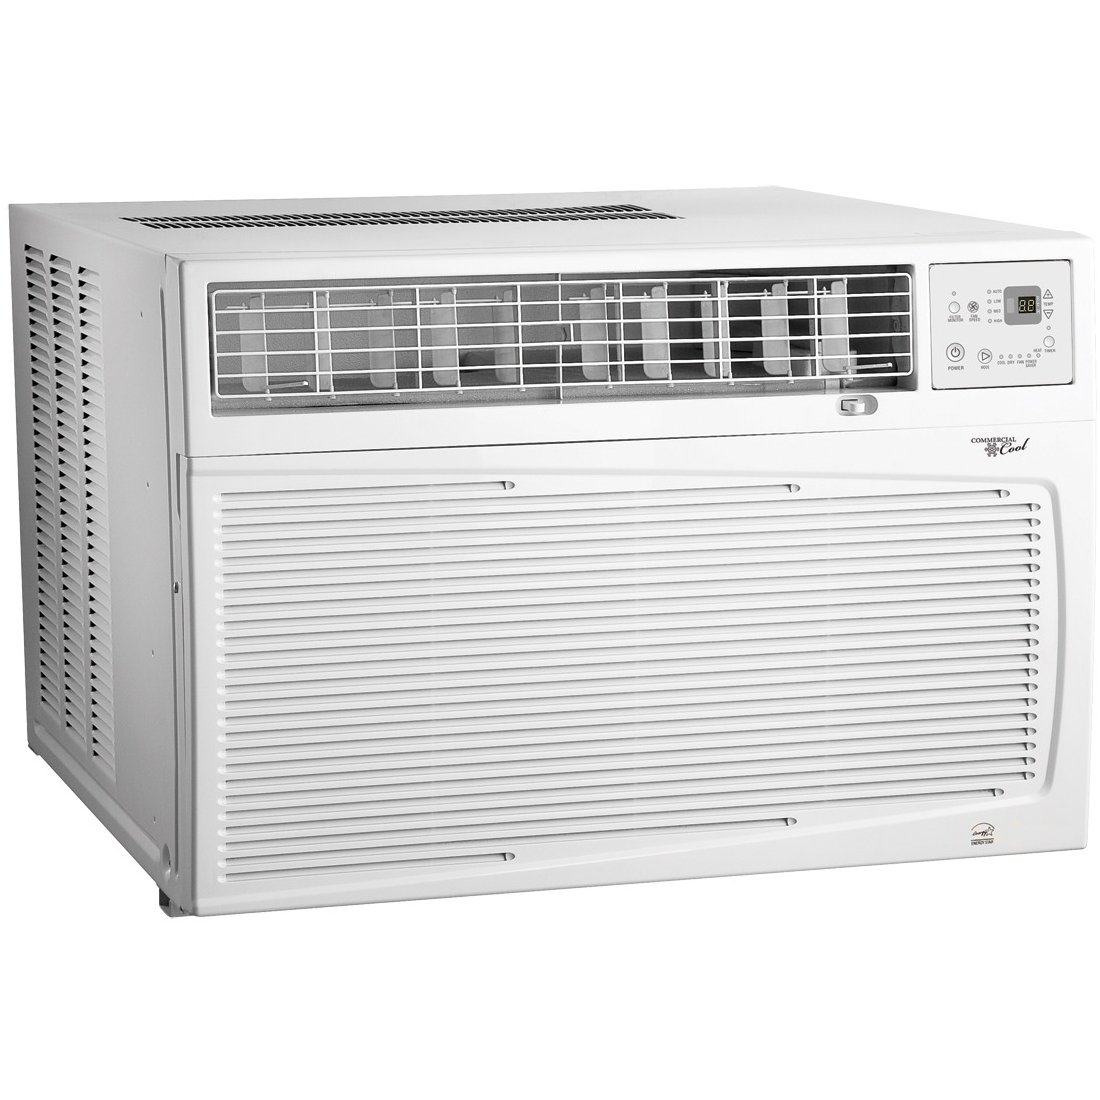 Amazon.com: COMMERCIAL COOL   CWH18B 18,000 BTU Heat / Cool Air Conditioner:  Home U0026 Kitchen